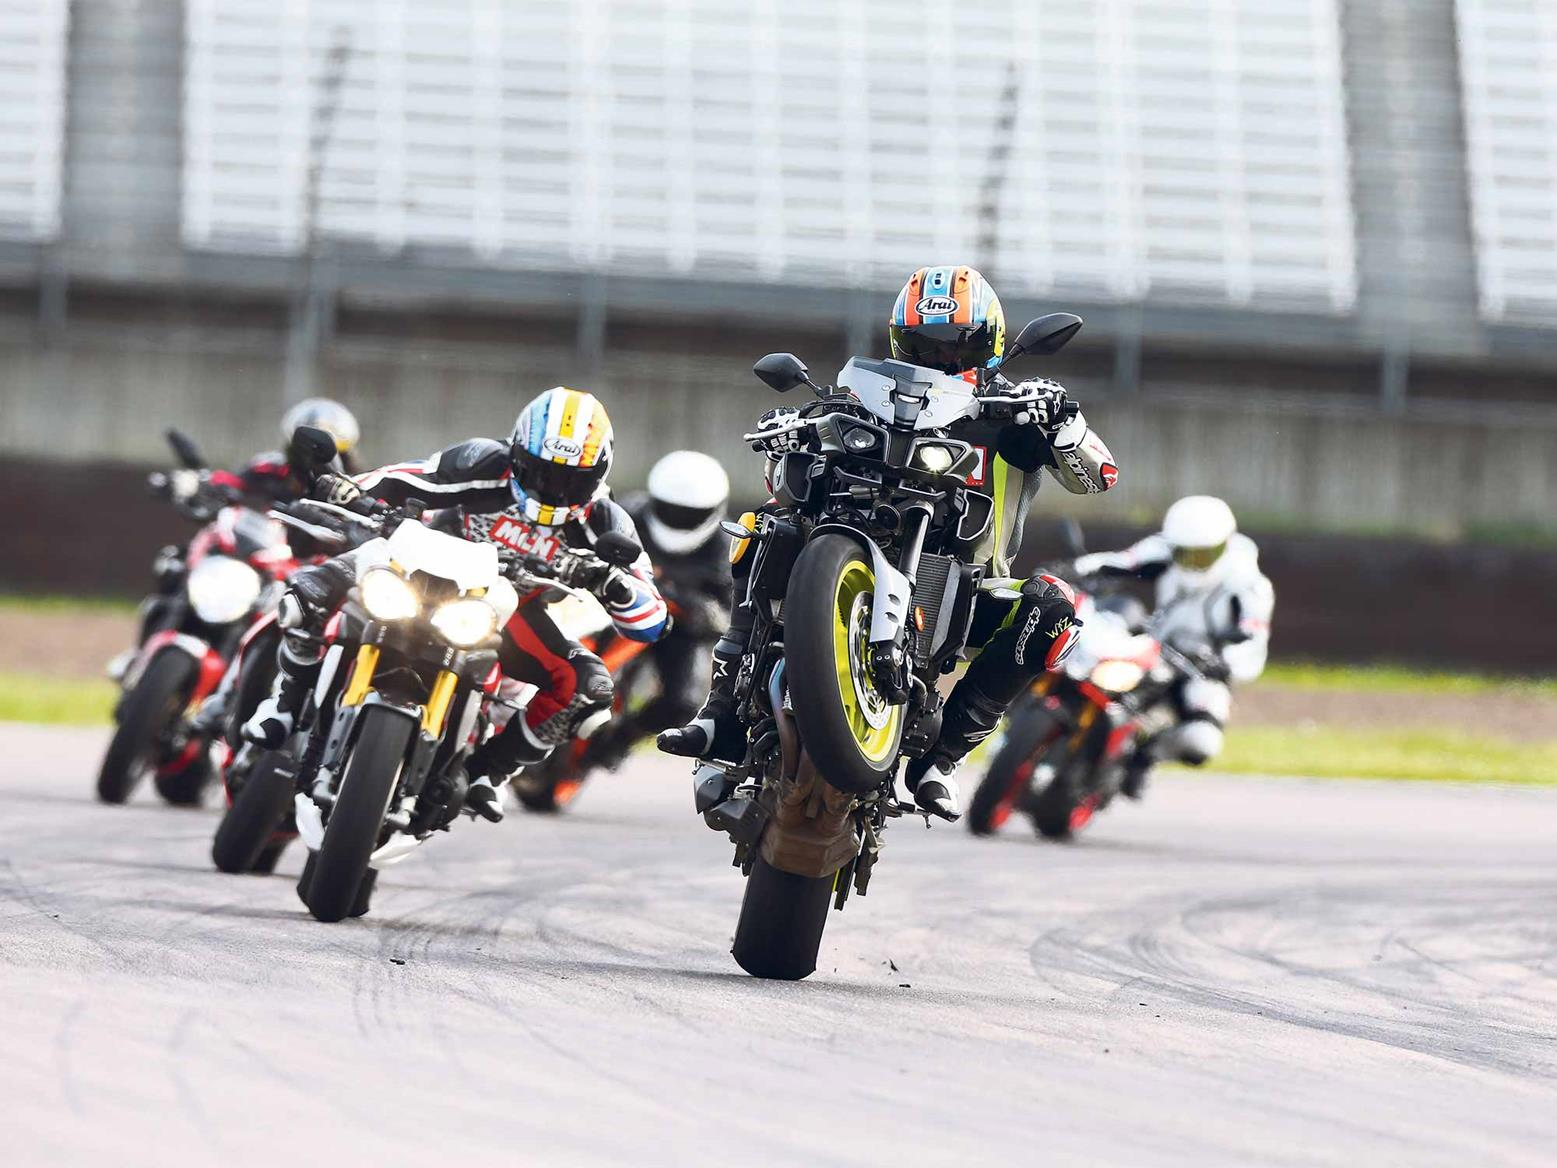 An MT-10 wheelies with its supernaked rivals